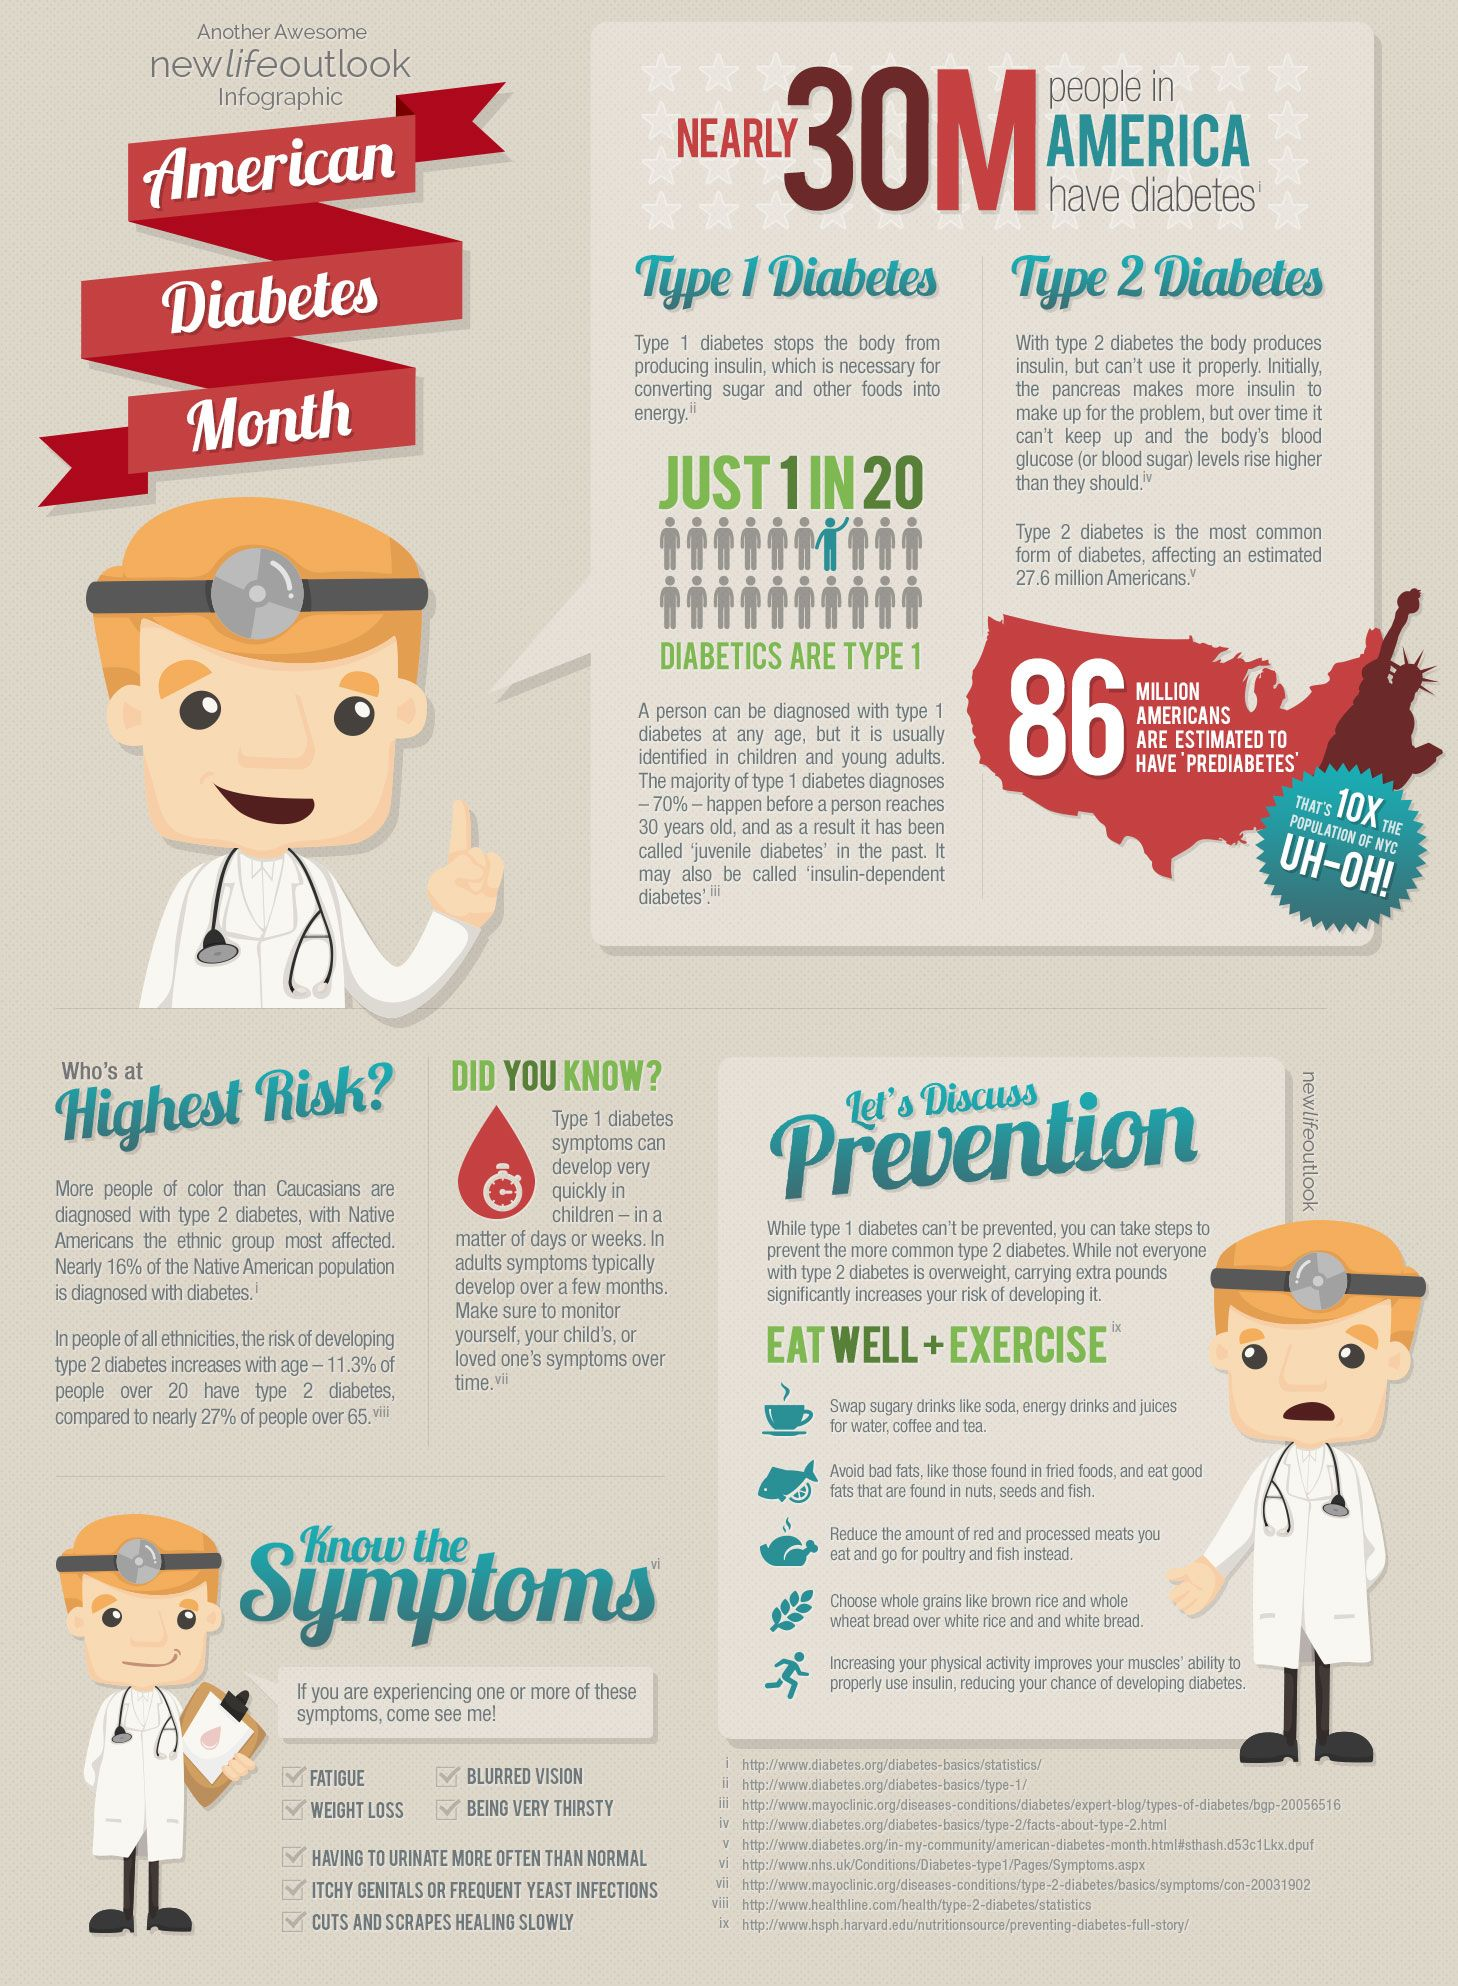 Why I Raise Awareness for Type 2 Diabetes recommend